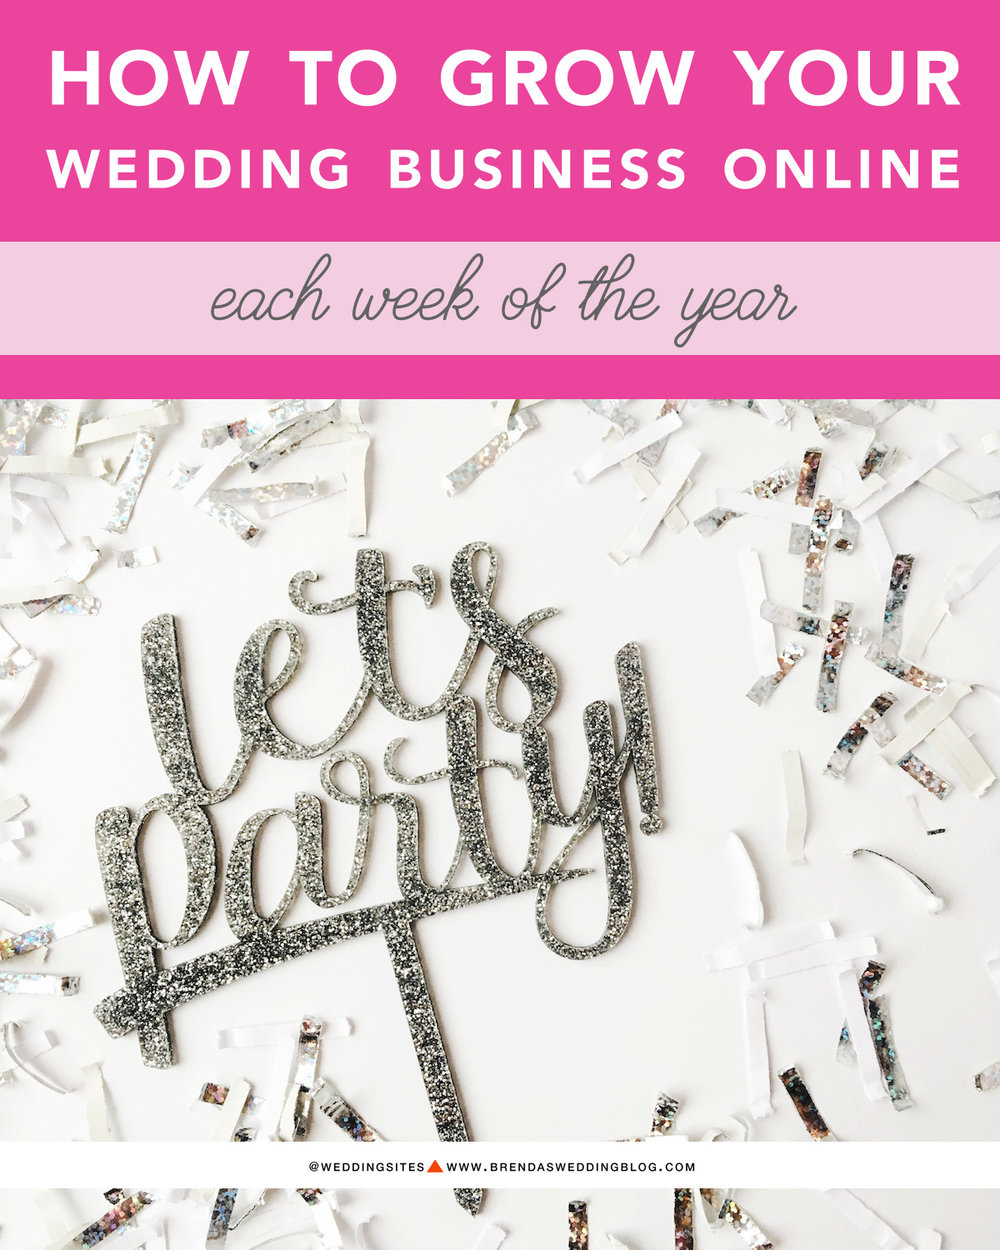 Click to Learn How to Grow Your Wedding Business Online - for each week of the year / Marketing Strategies for Wedding Business Owners / as seen on www.BrendasWeddingBlog.com